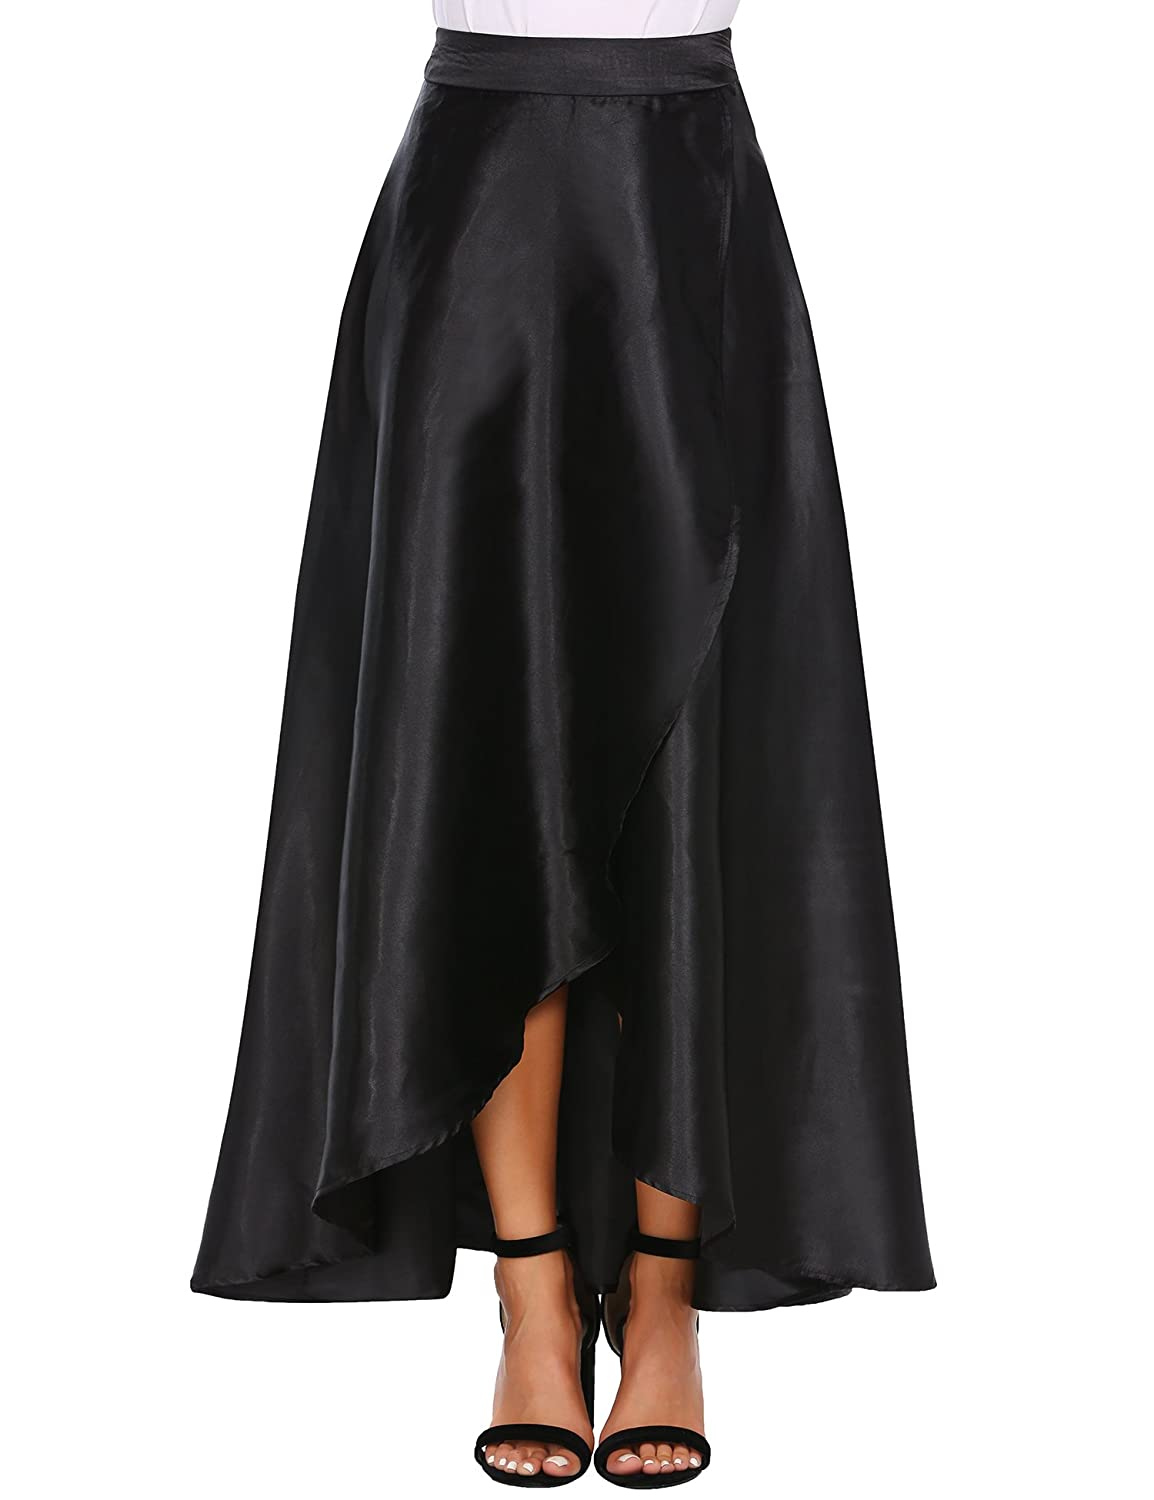 430f7edd0b No elasticity in the waist. IRREGULAR MAXI SKIRT WITH BIG SWING--- Crafted  from high qaulity fabric, it languidly cascades from the silk-satin ...